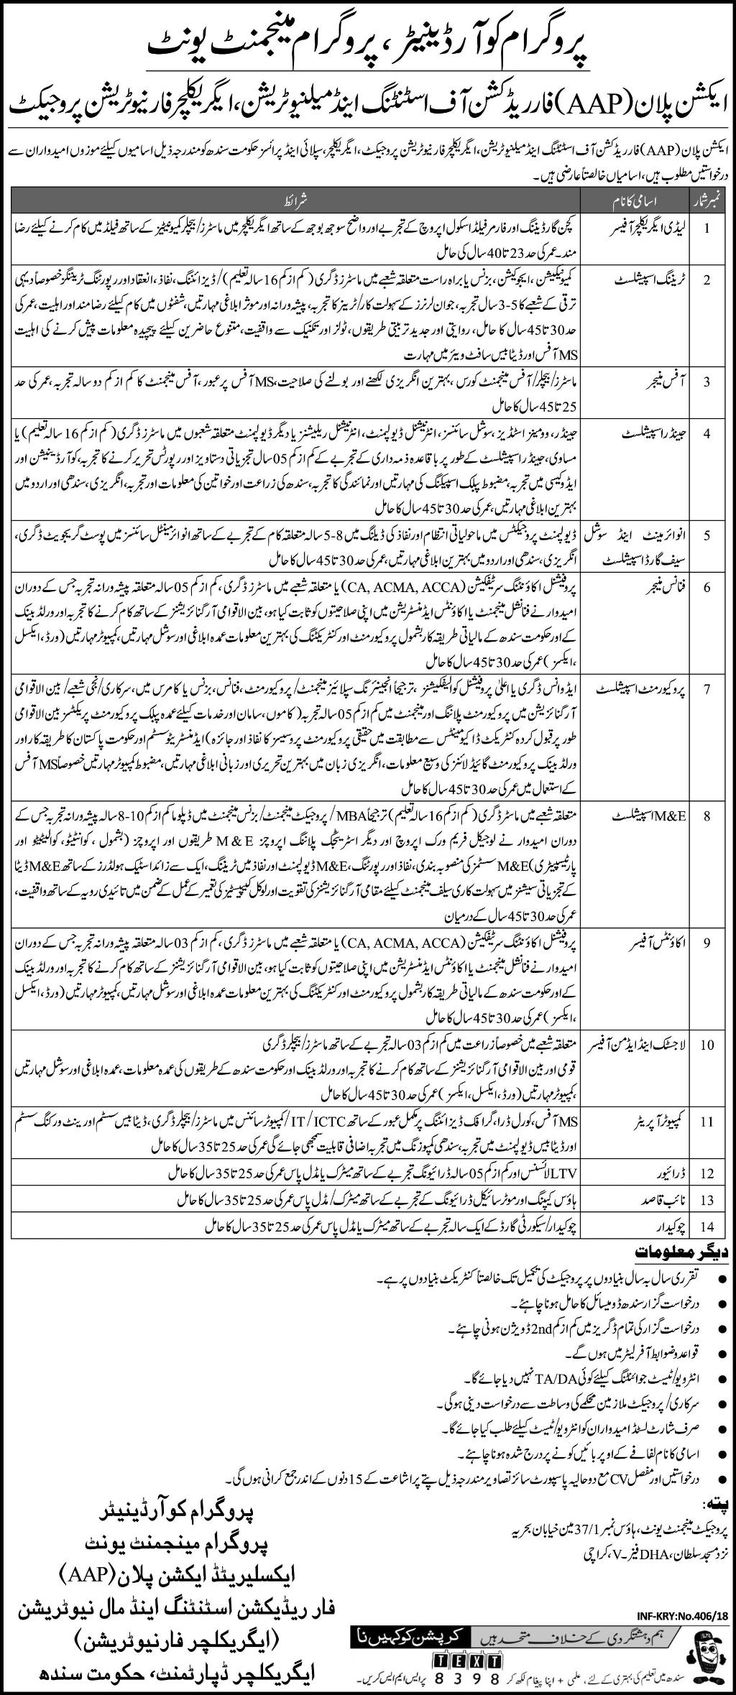 Agriculture Department Jobs 2018 In Karachi For Computer Operator And Managers https://www.jobsfanda.com/agriculture-department-jobs-2018-karachi-computer-operator-managers/